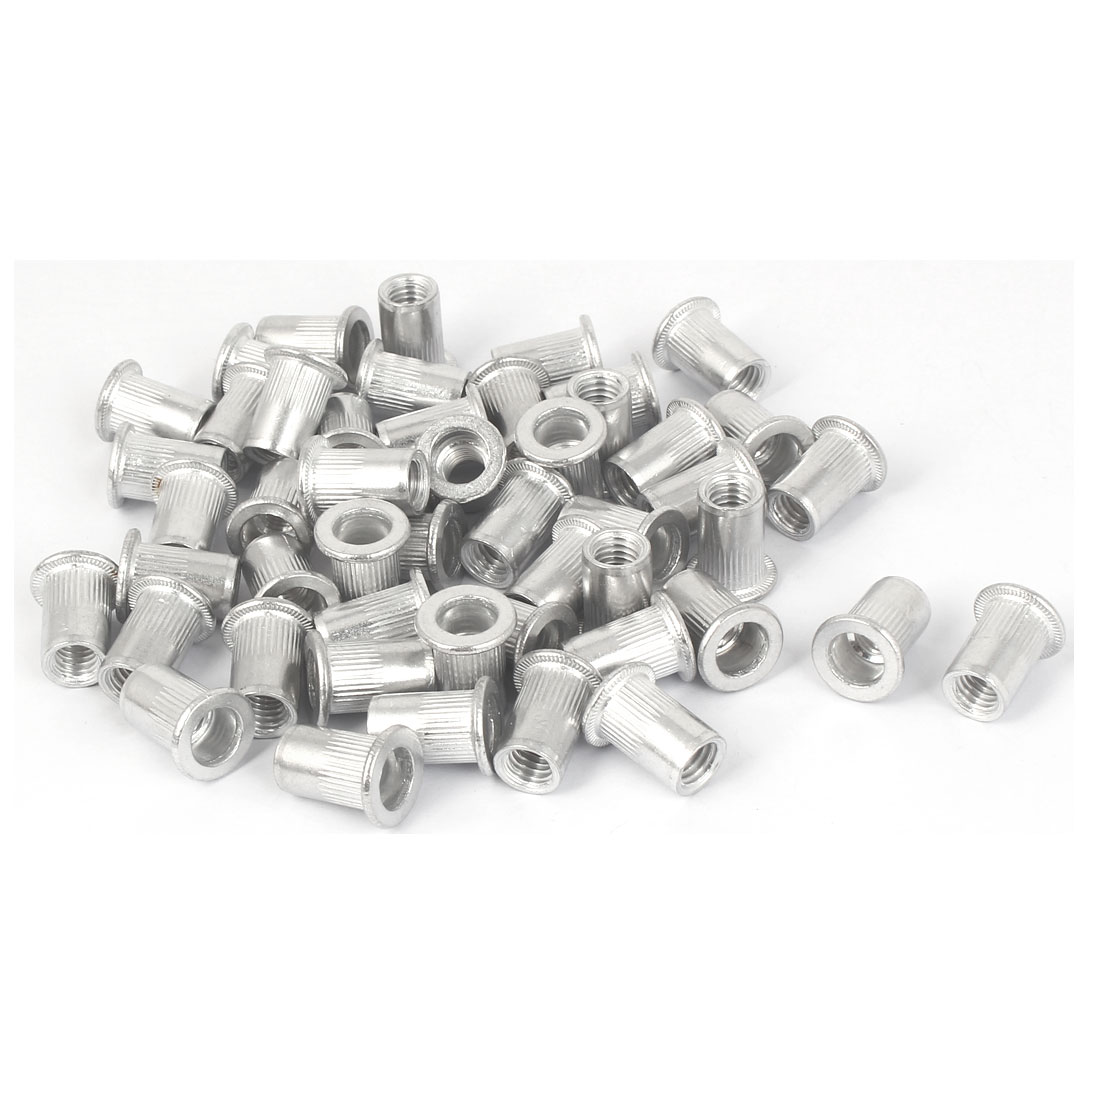 M8x18mm Aluminum Straight Knurled Blind Rivet Nut Fastener 50pcs